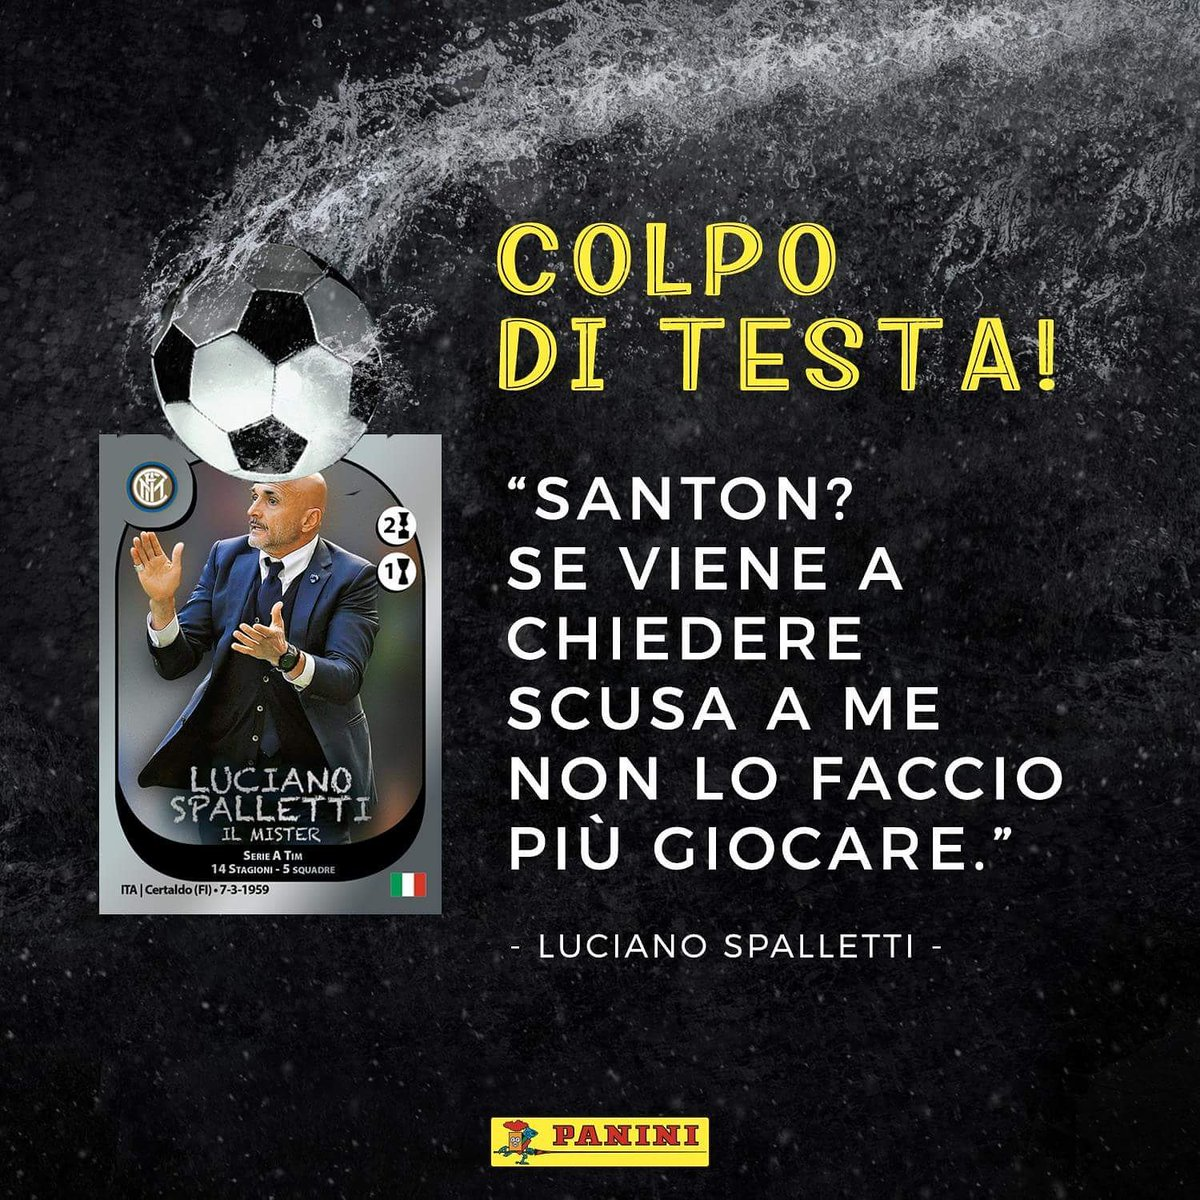 #Spalletti